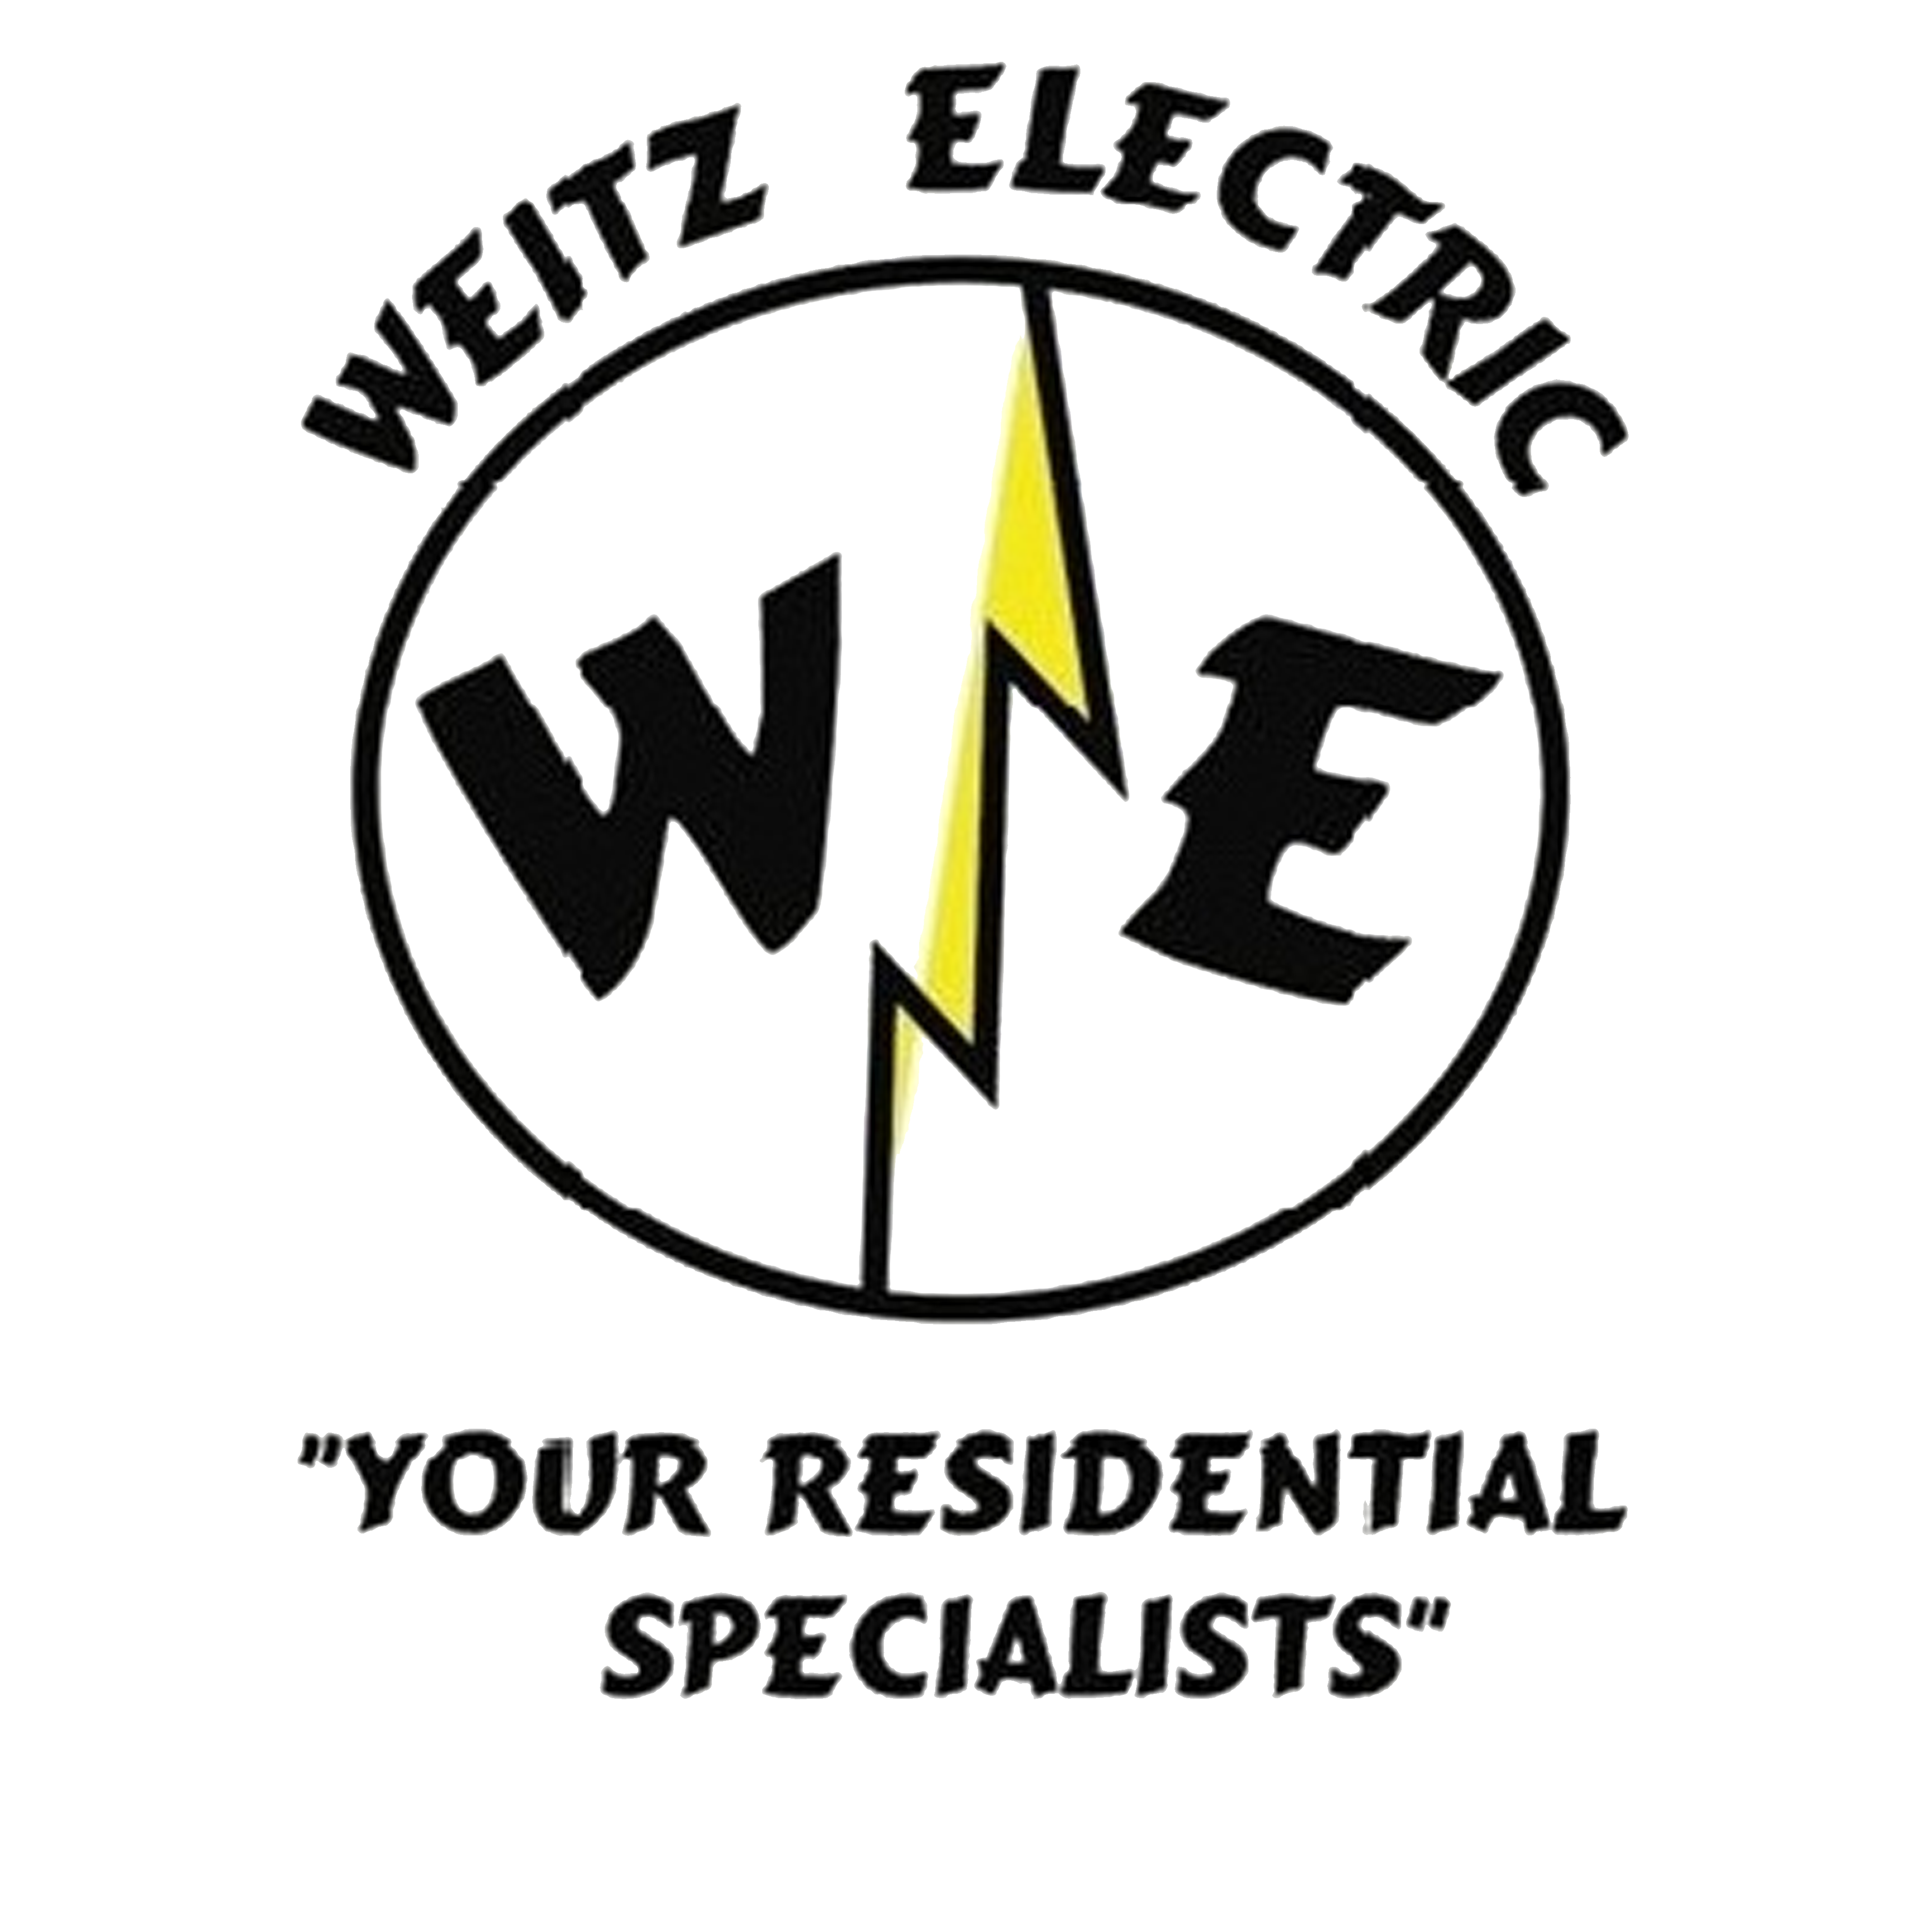 Weitz Electric